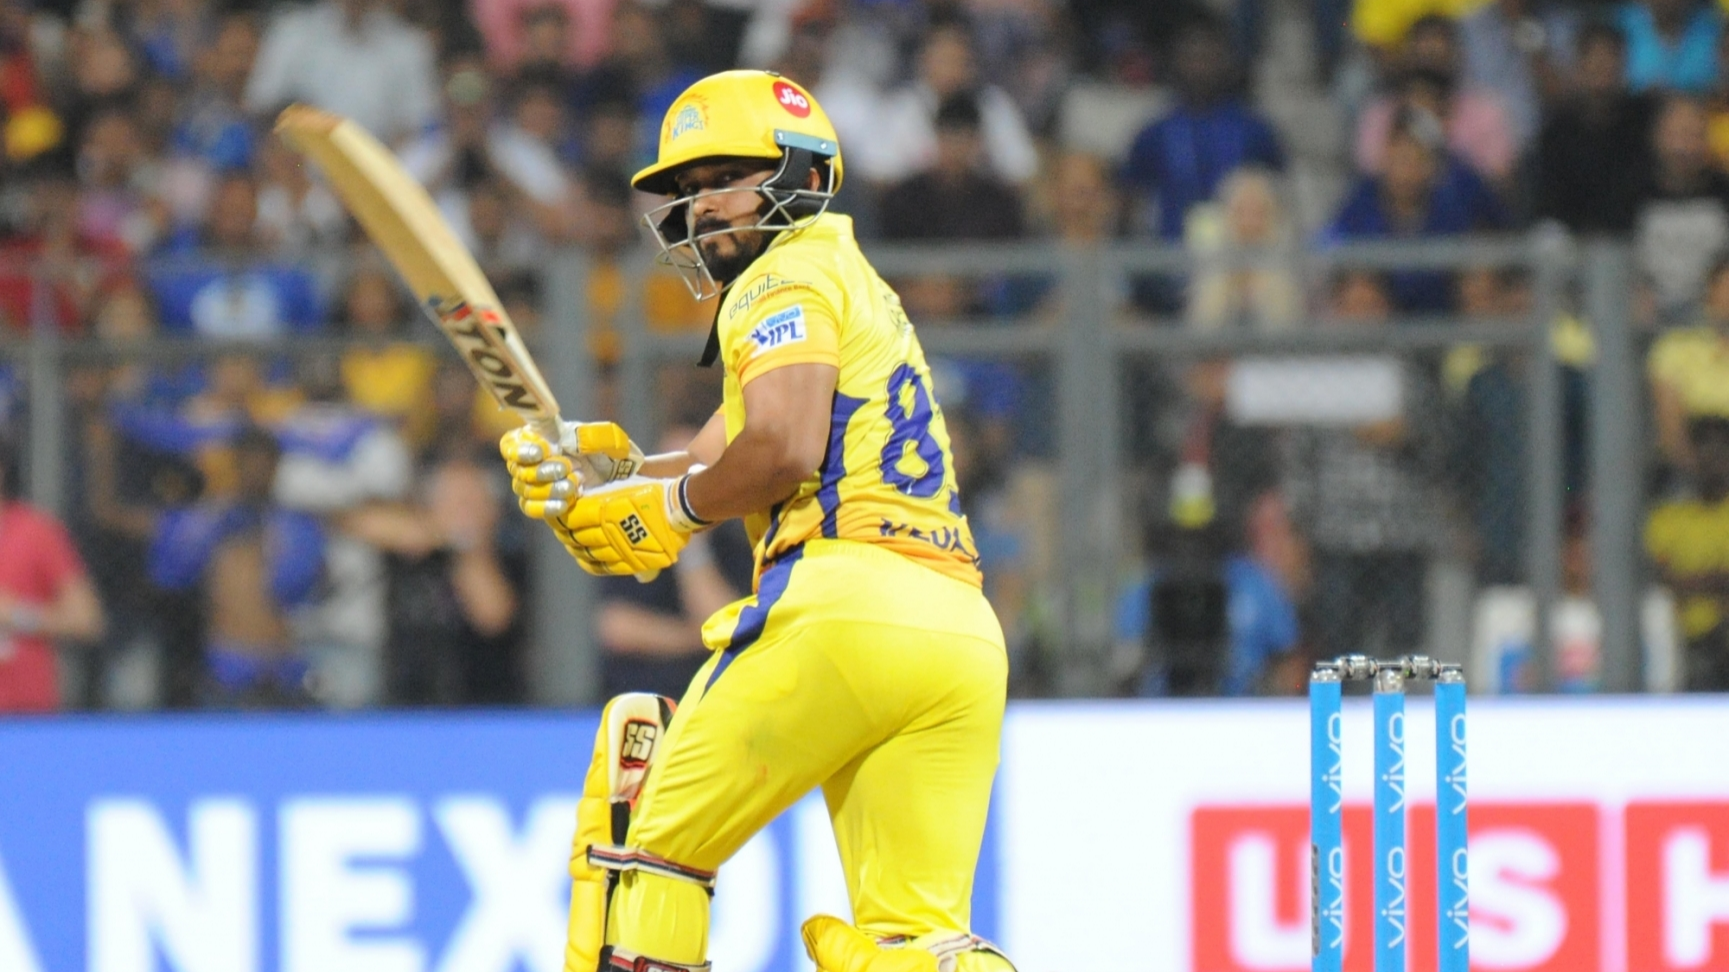 IPL 2018: Kedar Jadhav ruled out with grade 2 hamstring injury; Faf Du Plessis, Murali Vijay also battling injuries